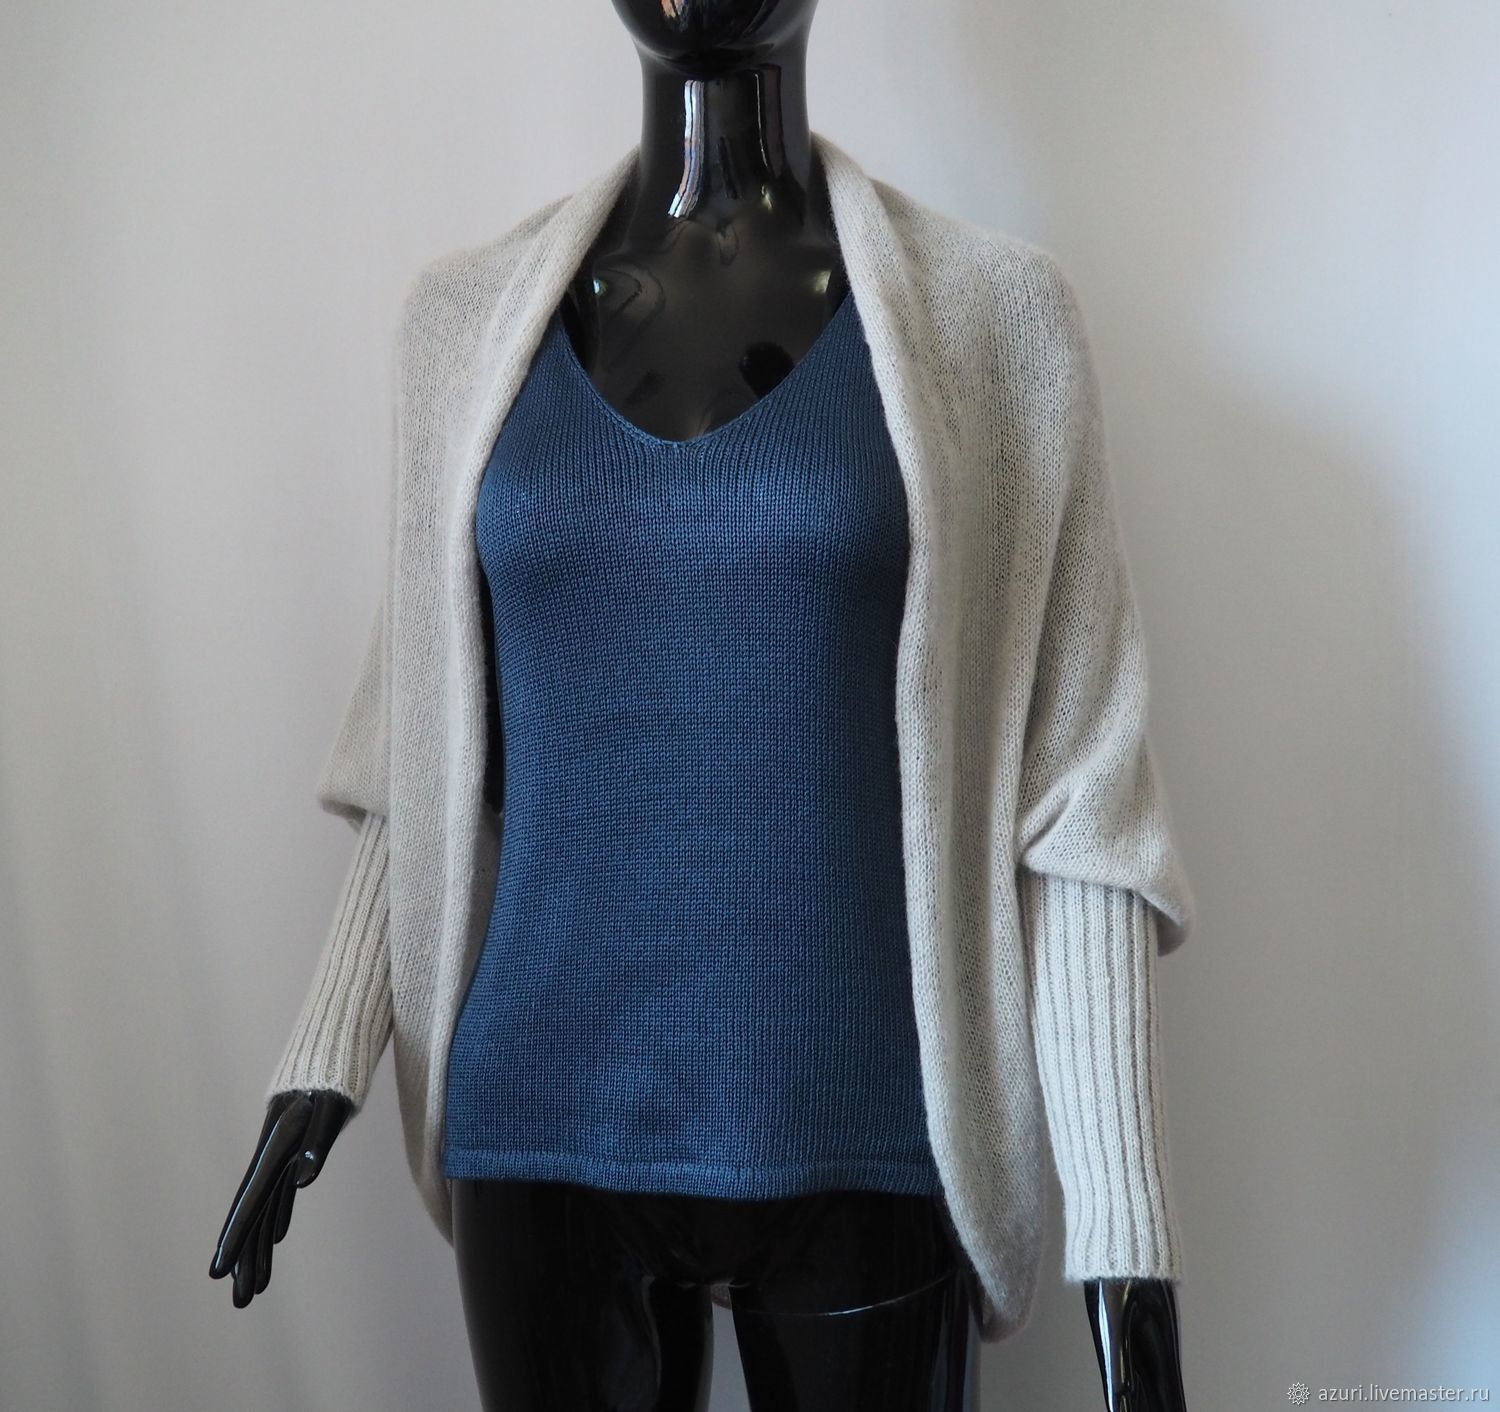 Cape cardigan with cuffs made of kid mohair (fog, light gray), Cardigans, Cheboksary,  Фото №1